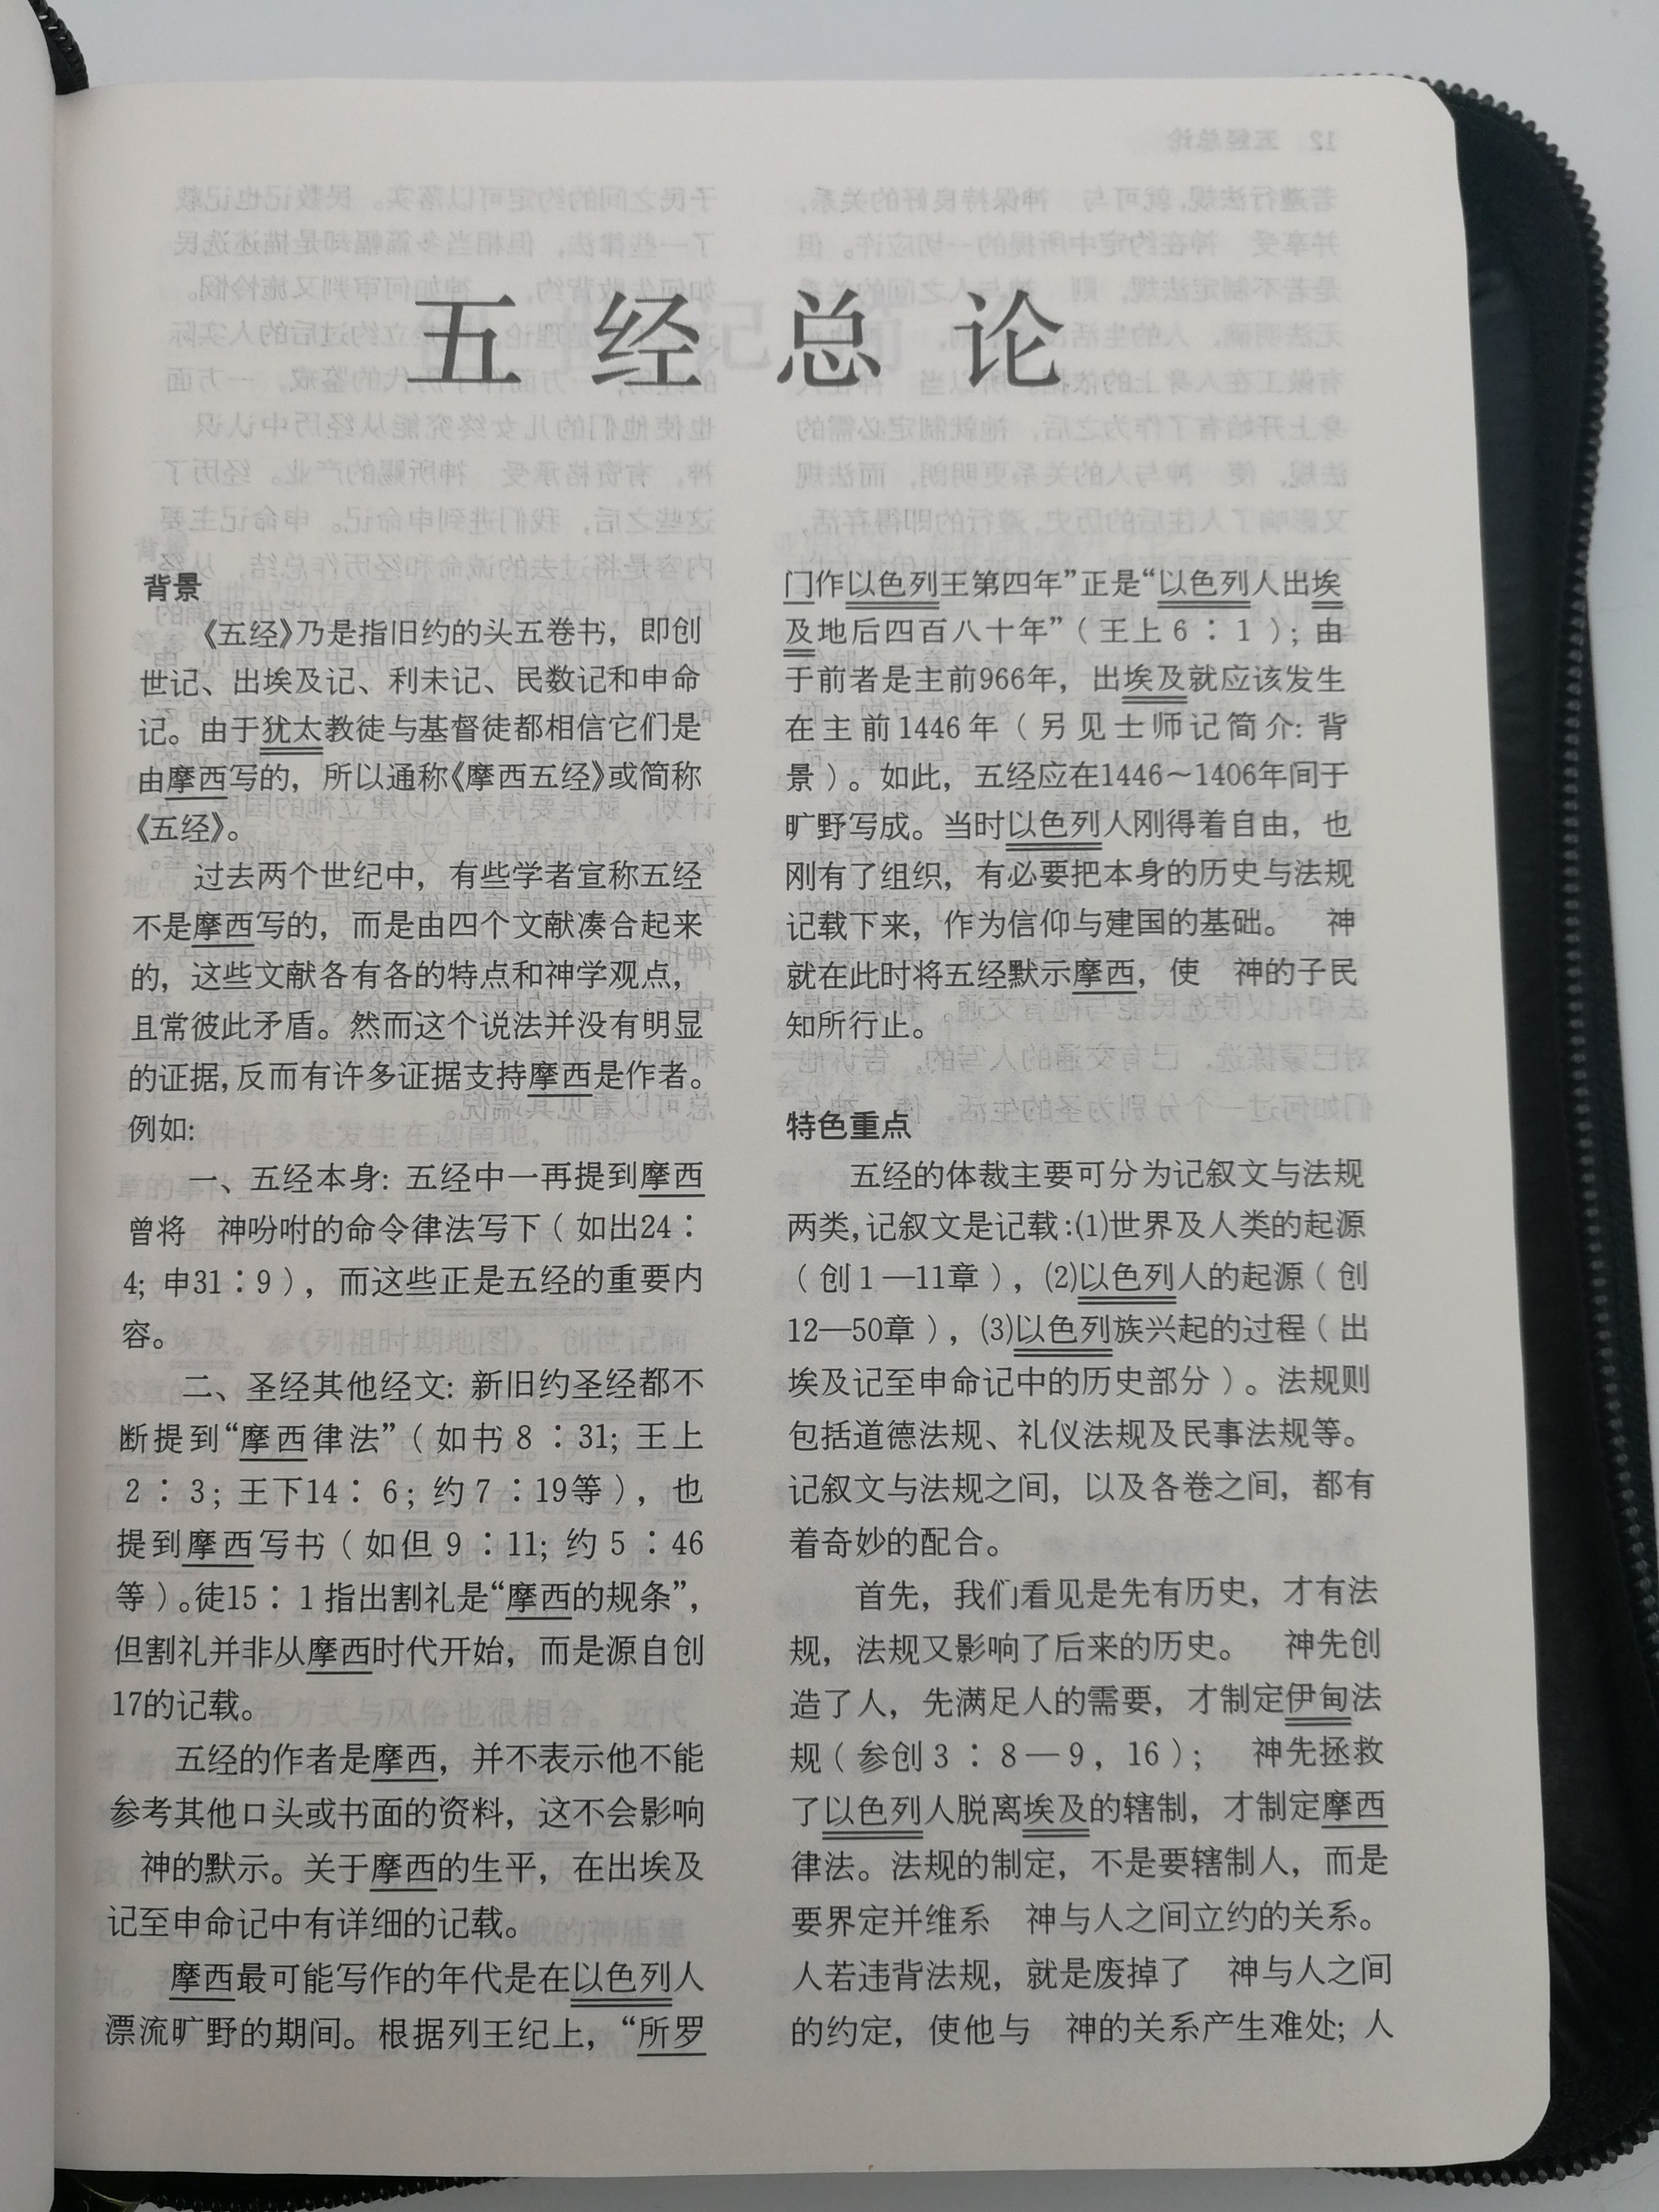 1-chinese-holy-bible-study-and-research-version-with-color-maps-black-leather-bound-with-zipper-and-golden-edges-china-6-.jpg